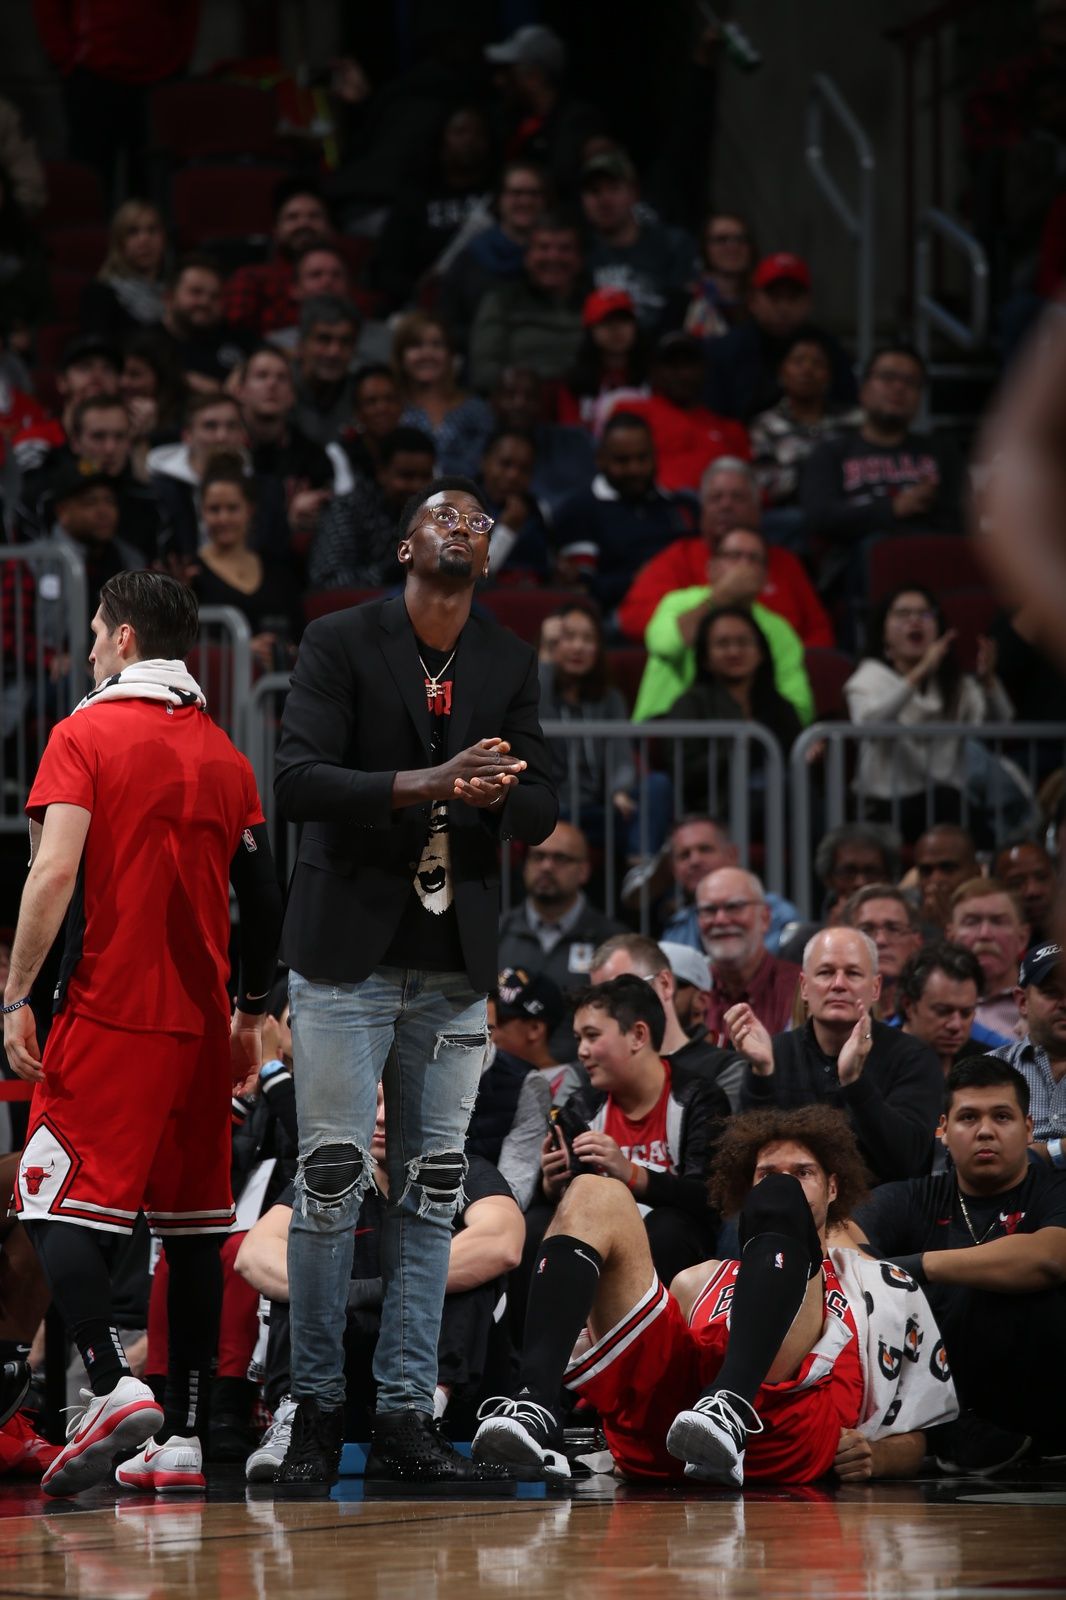 Bobby Portis #5 of the Chicago Bulls looks on during the game against the Houston Rockets on November 3, 2018 at the United Center in Chicago, Illinois.